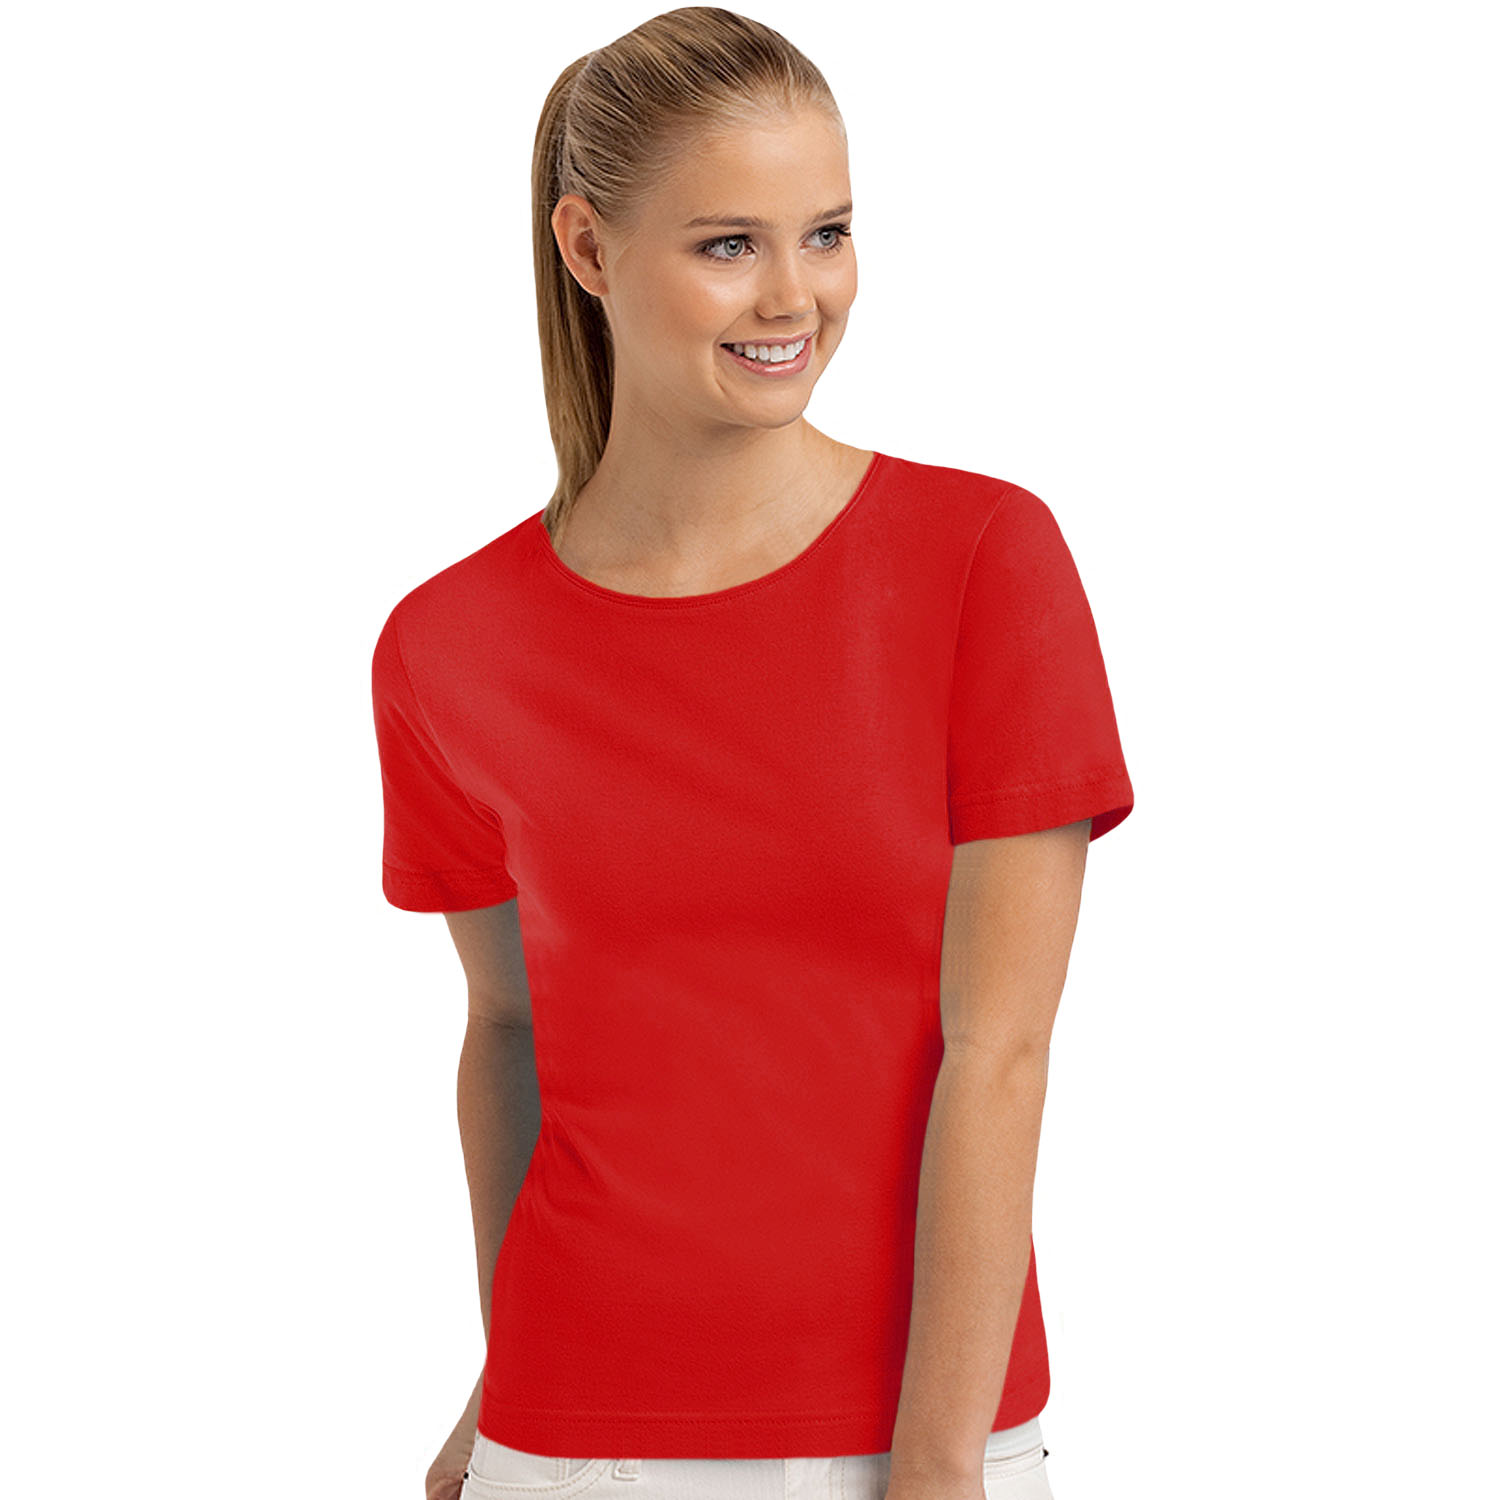 Hanes womens ladies short sleeve casual plain cotton t for Women s embellished t shirts